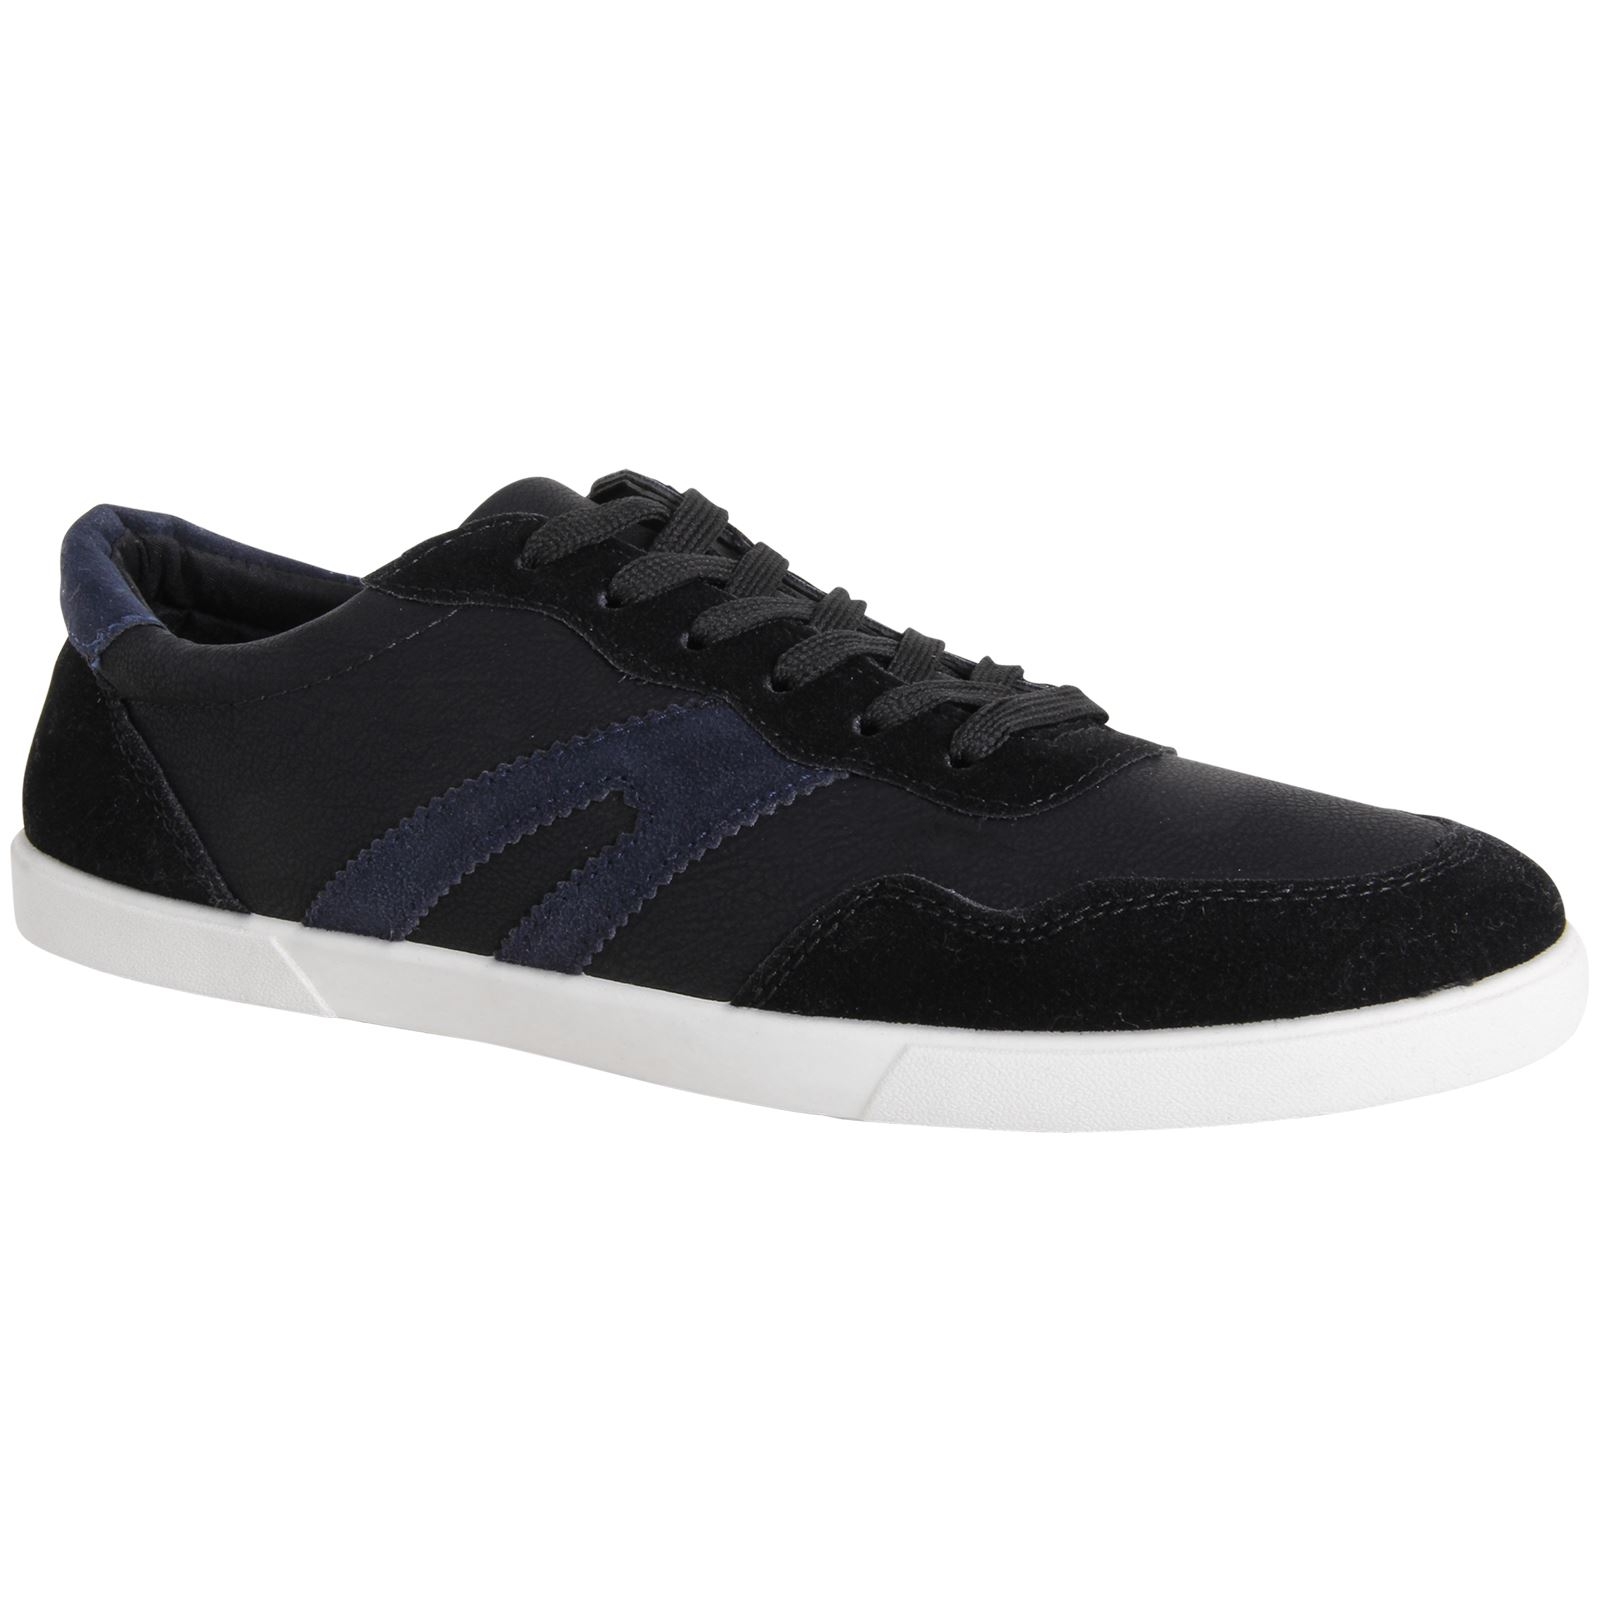 mens designer casual retro shoes leather suede lace up